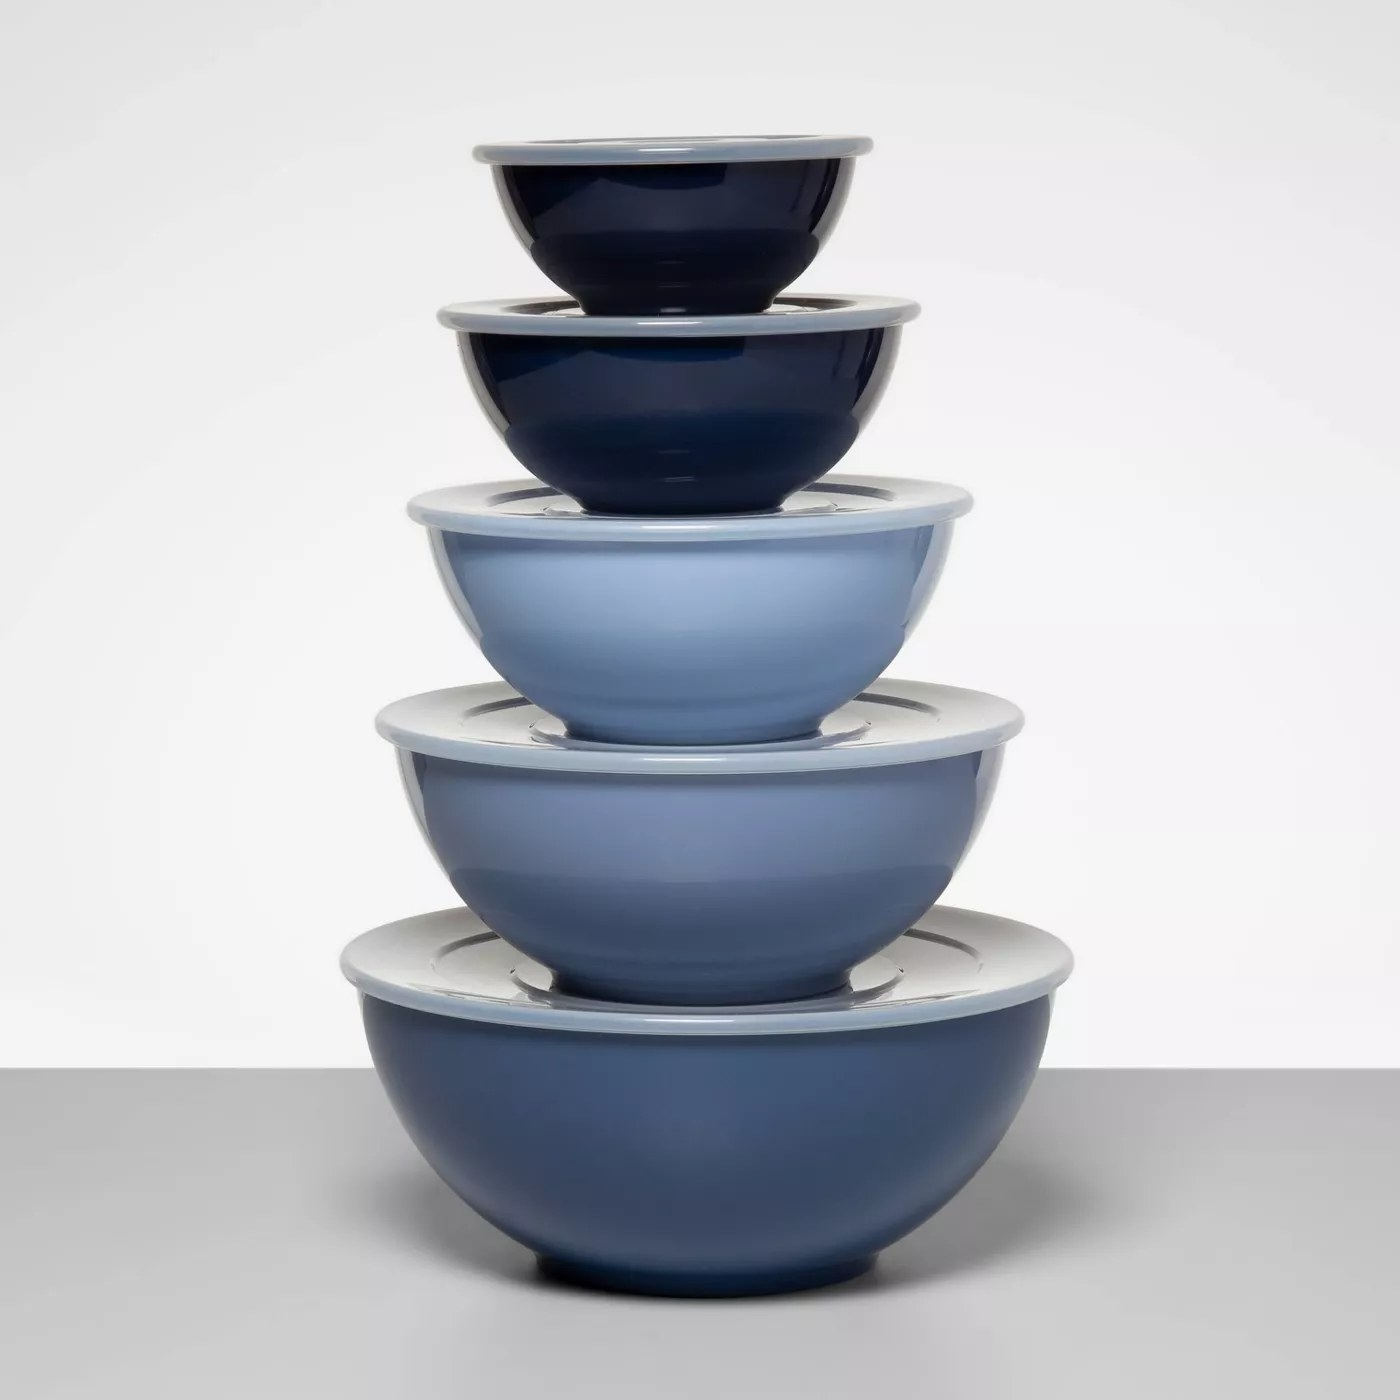 The blue mixing bowls with their lids